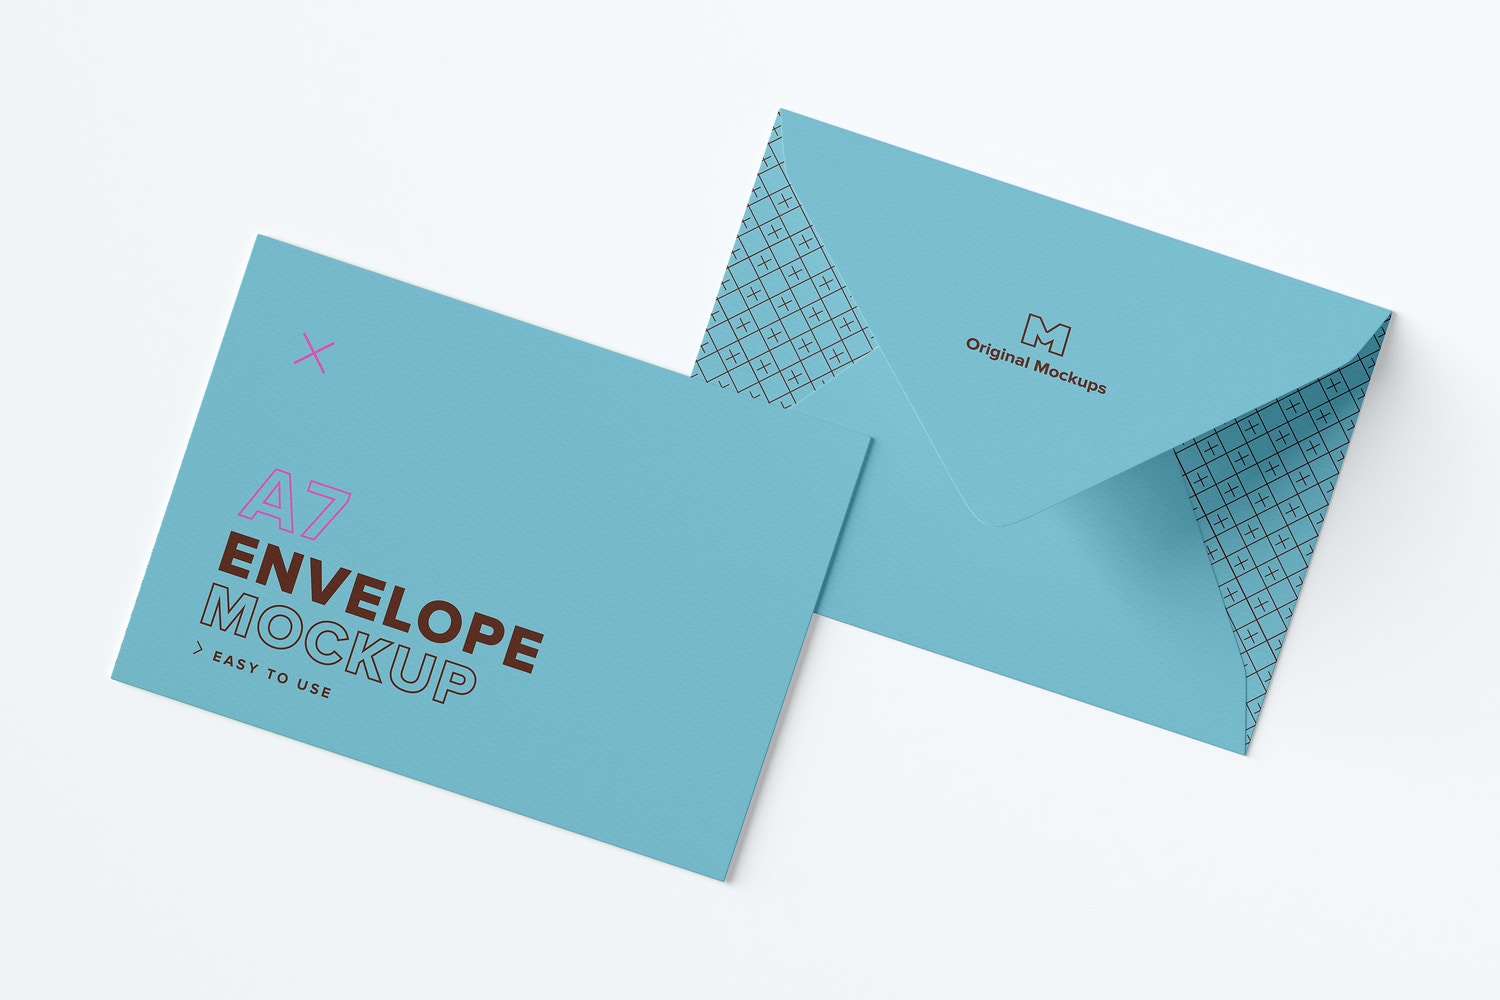 A7 Envelope Exterior Layout Mockup by Original Mockups on Original Mockups